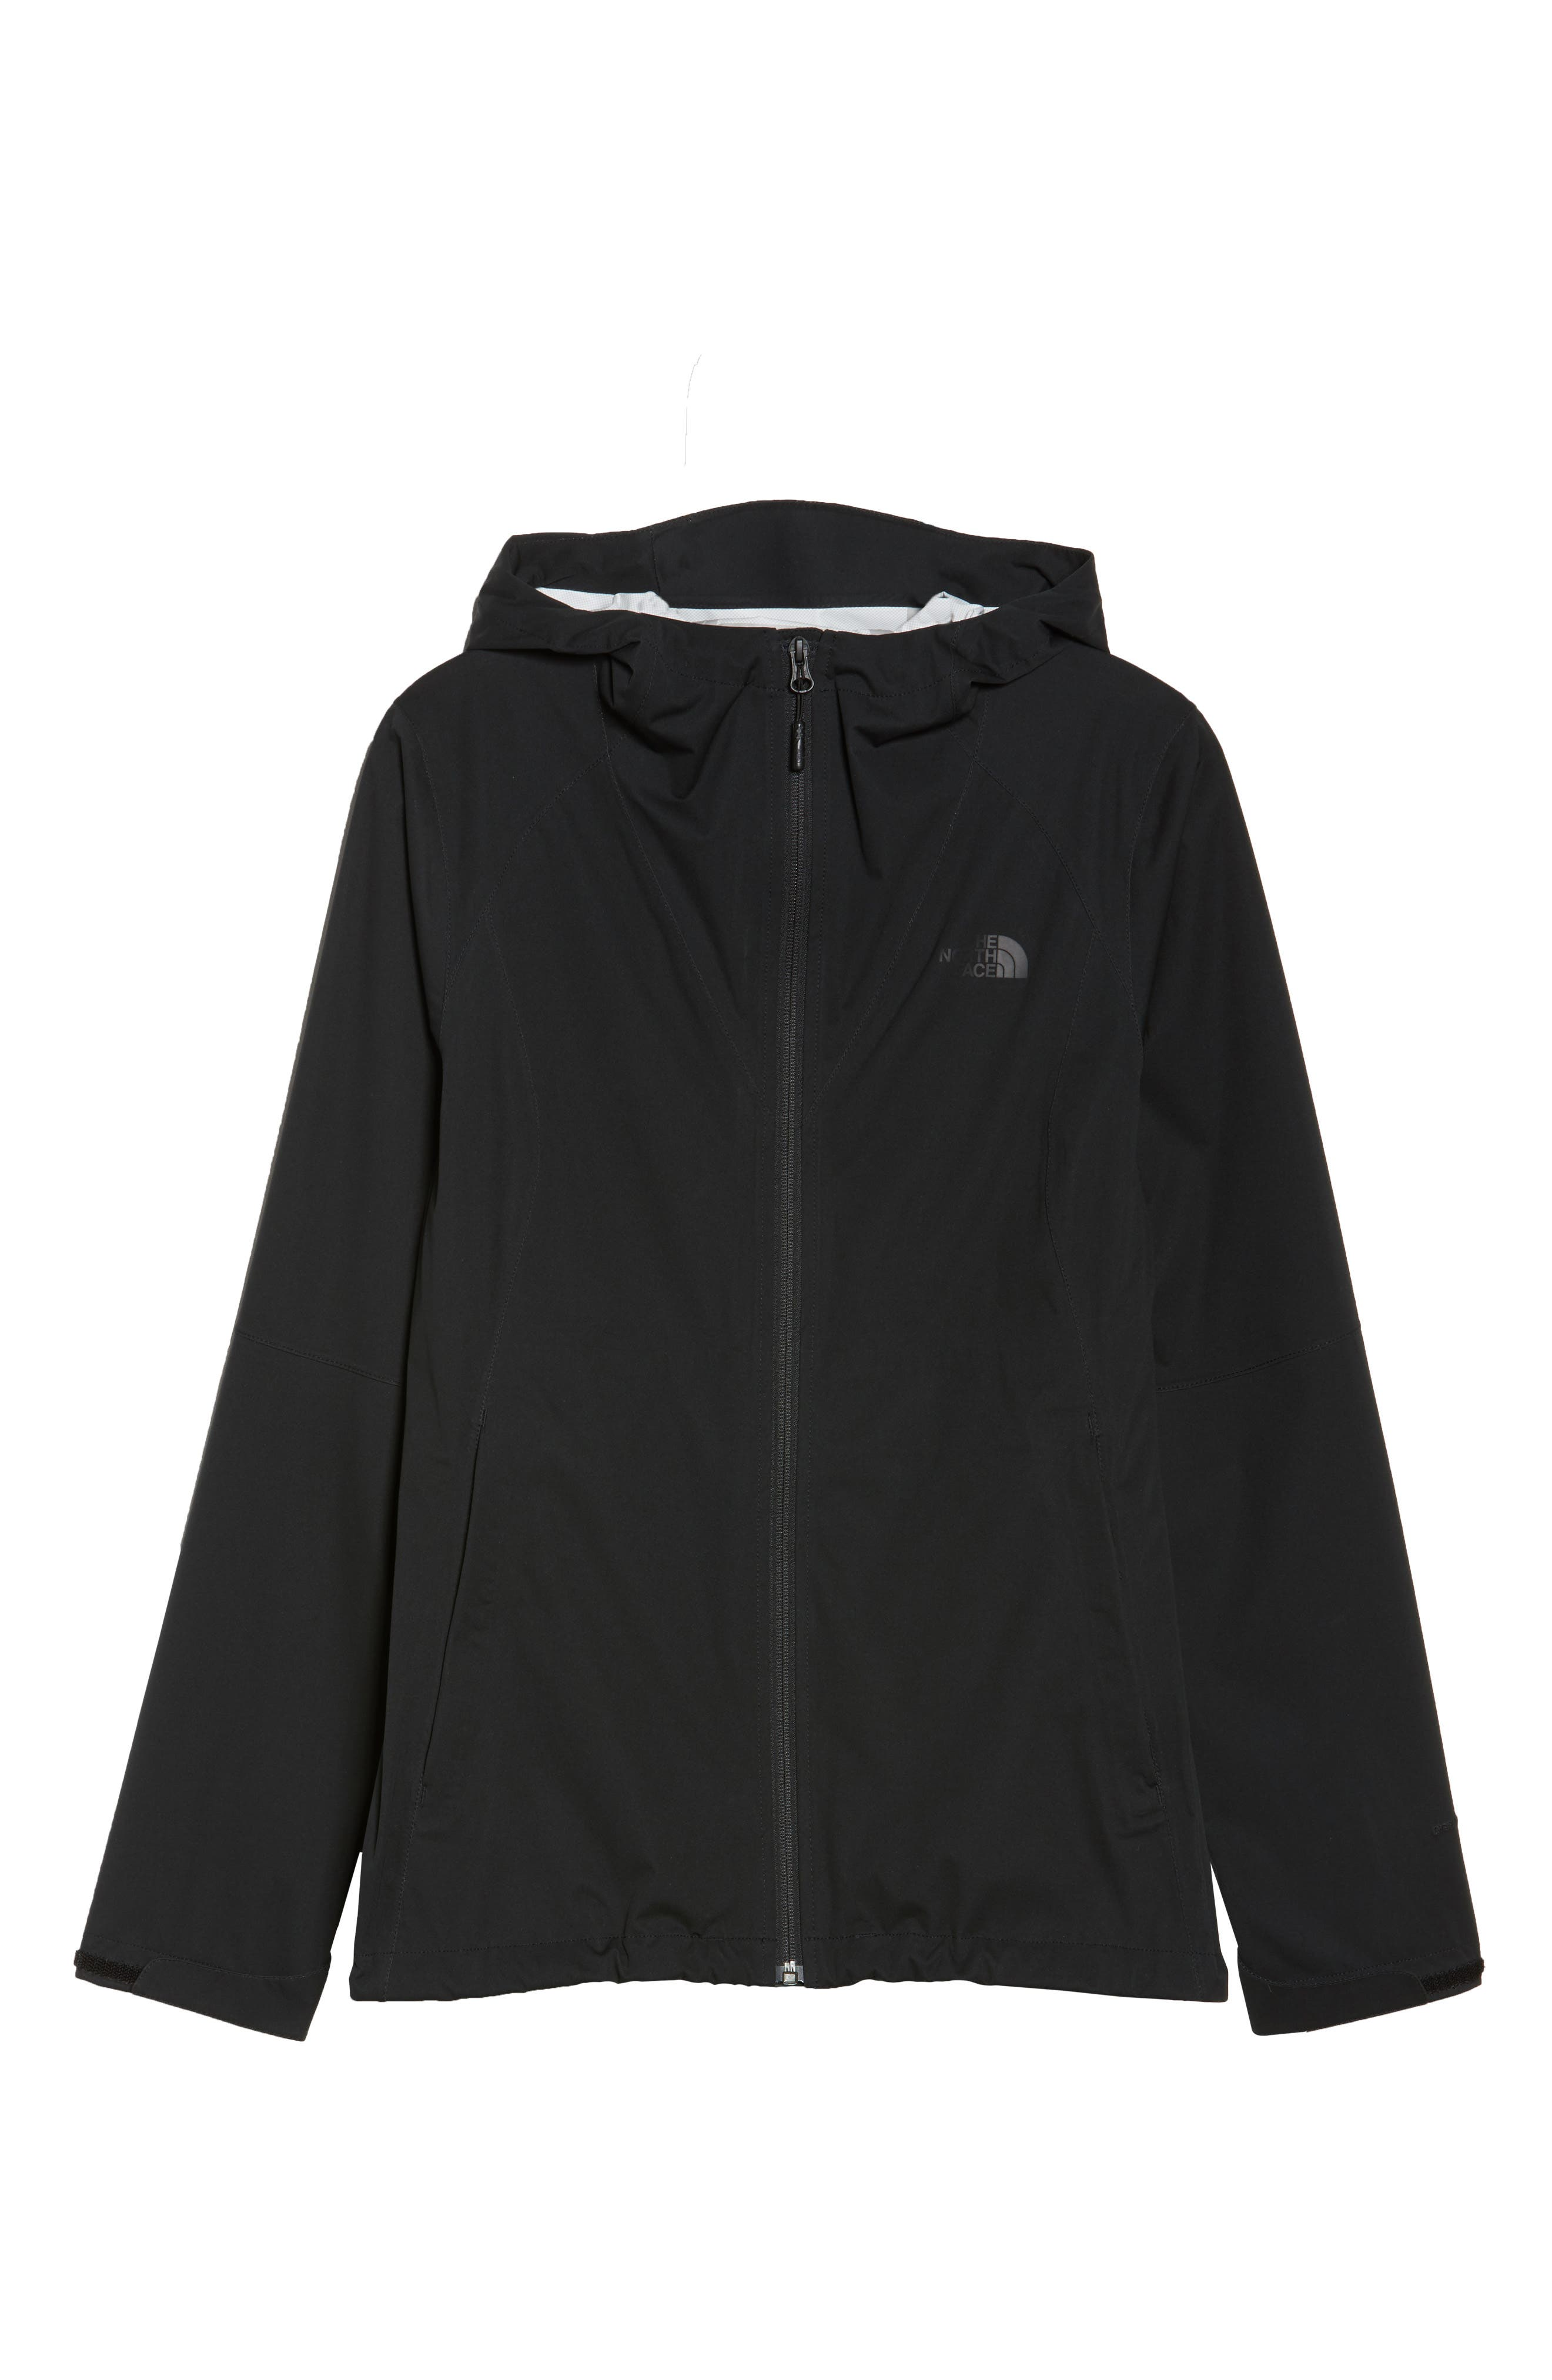 Allproof Stretch Jacket,                             Alternate thumbnail 6, color,                             TNF BLACK